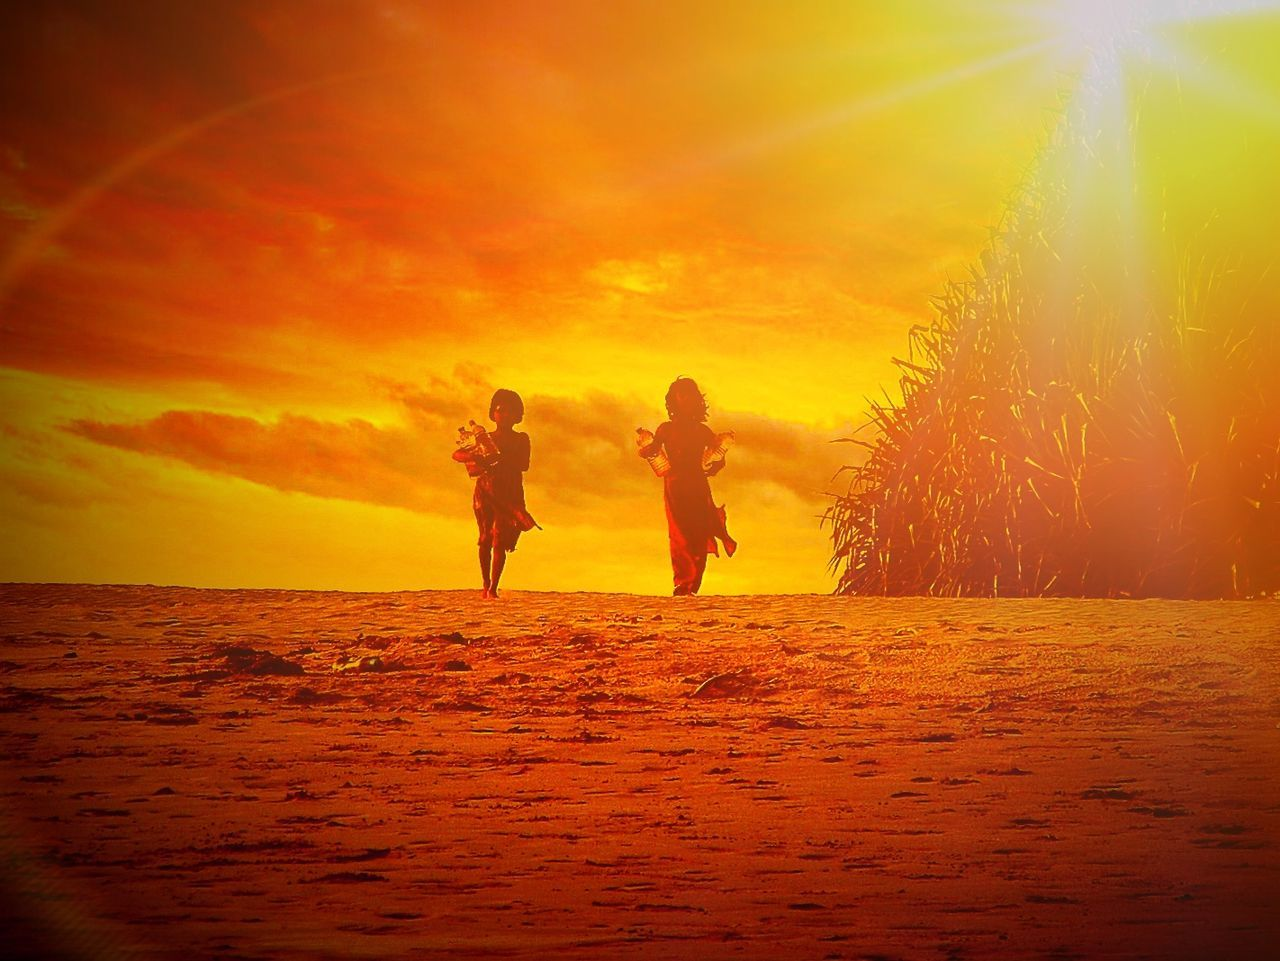 sunset, two people, togetherness, real people, leisure activity, full length, water, sea, nature, beauty in nature, lifestyles, silhouette, scenics, men, outdoors, vacations, women, bonding, standing, friendship, sky, young women, horizon over water, day, young adult, adult, people